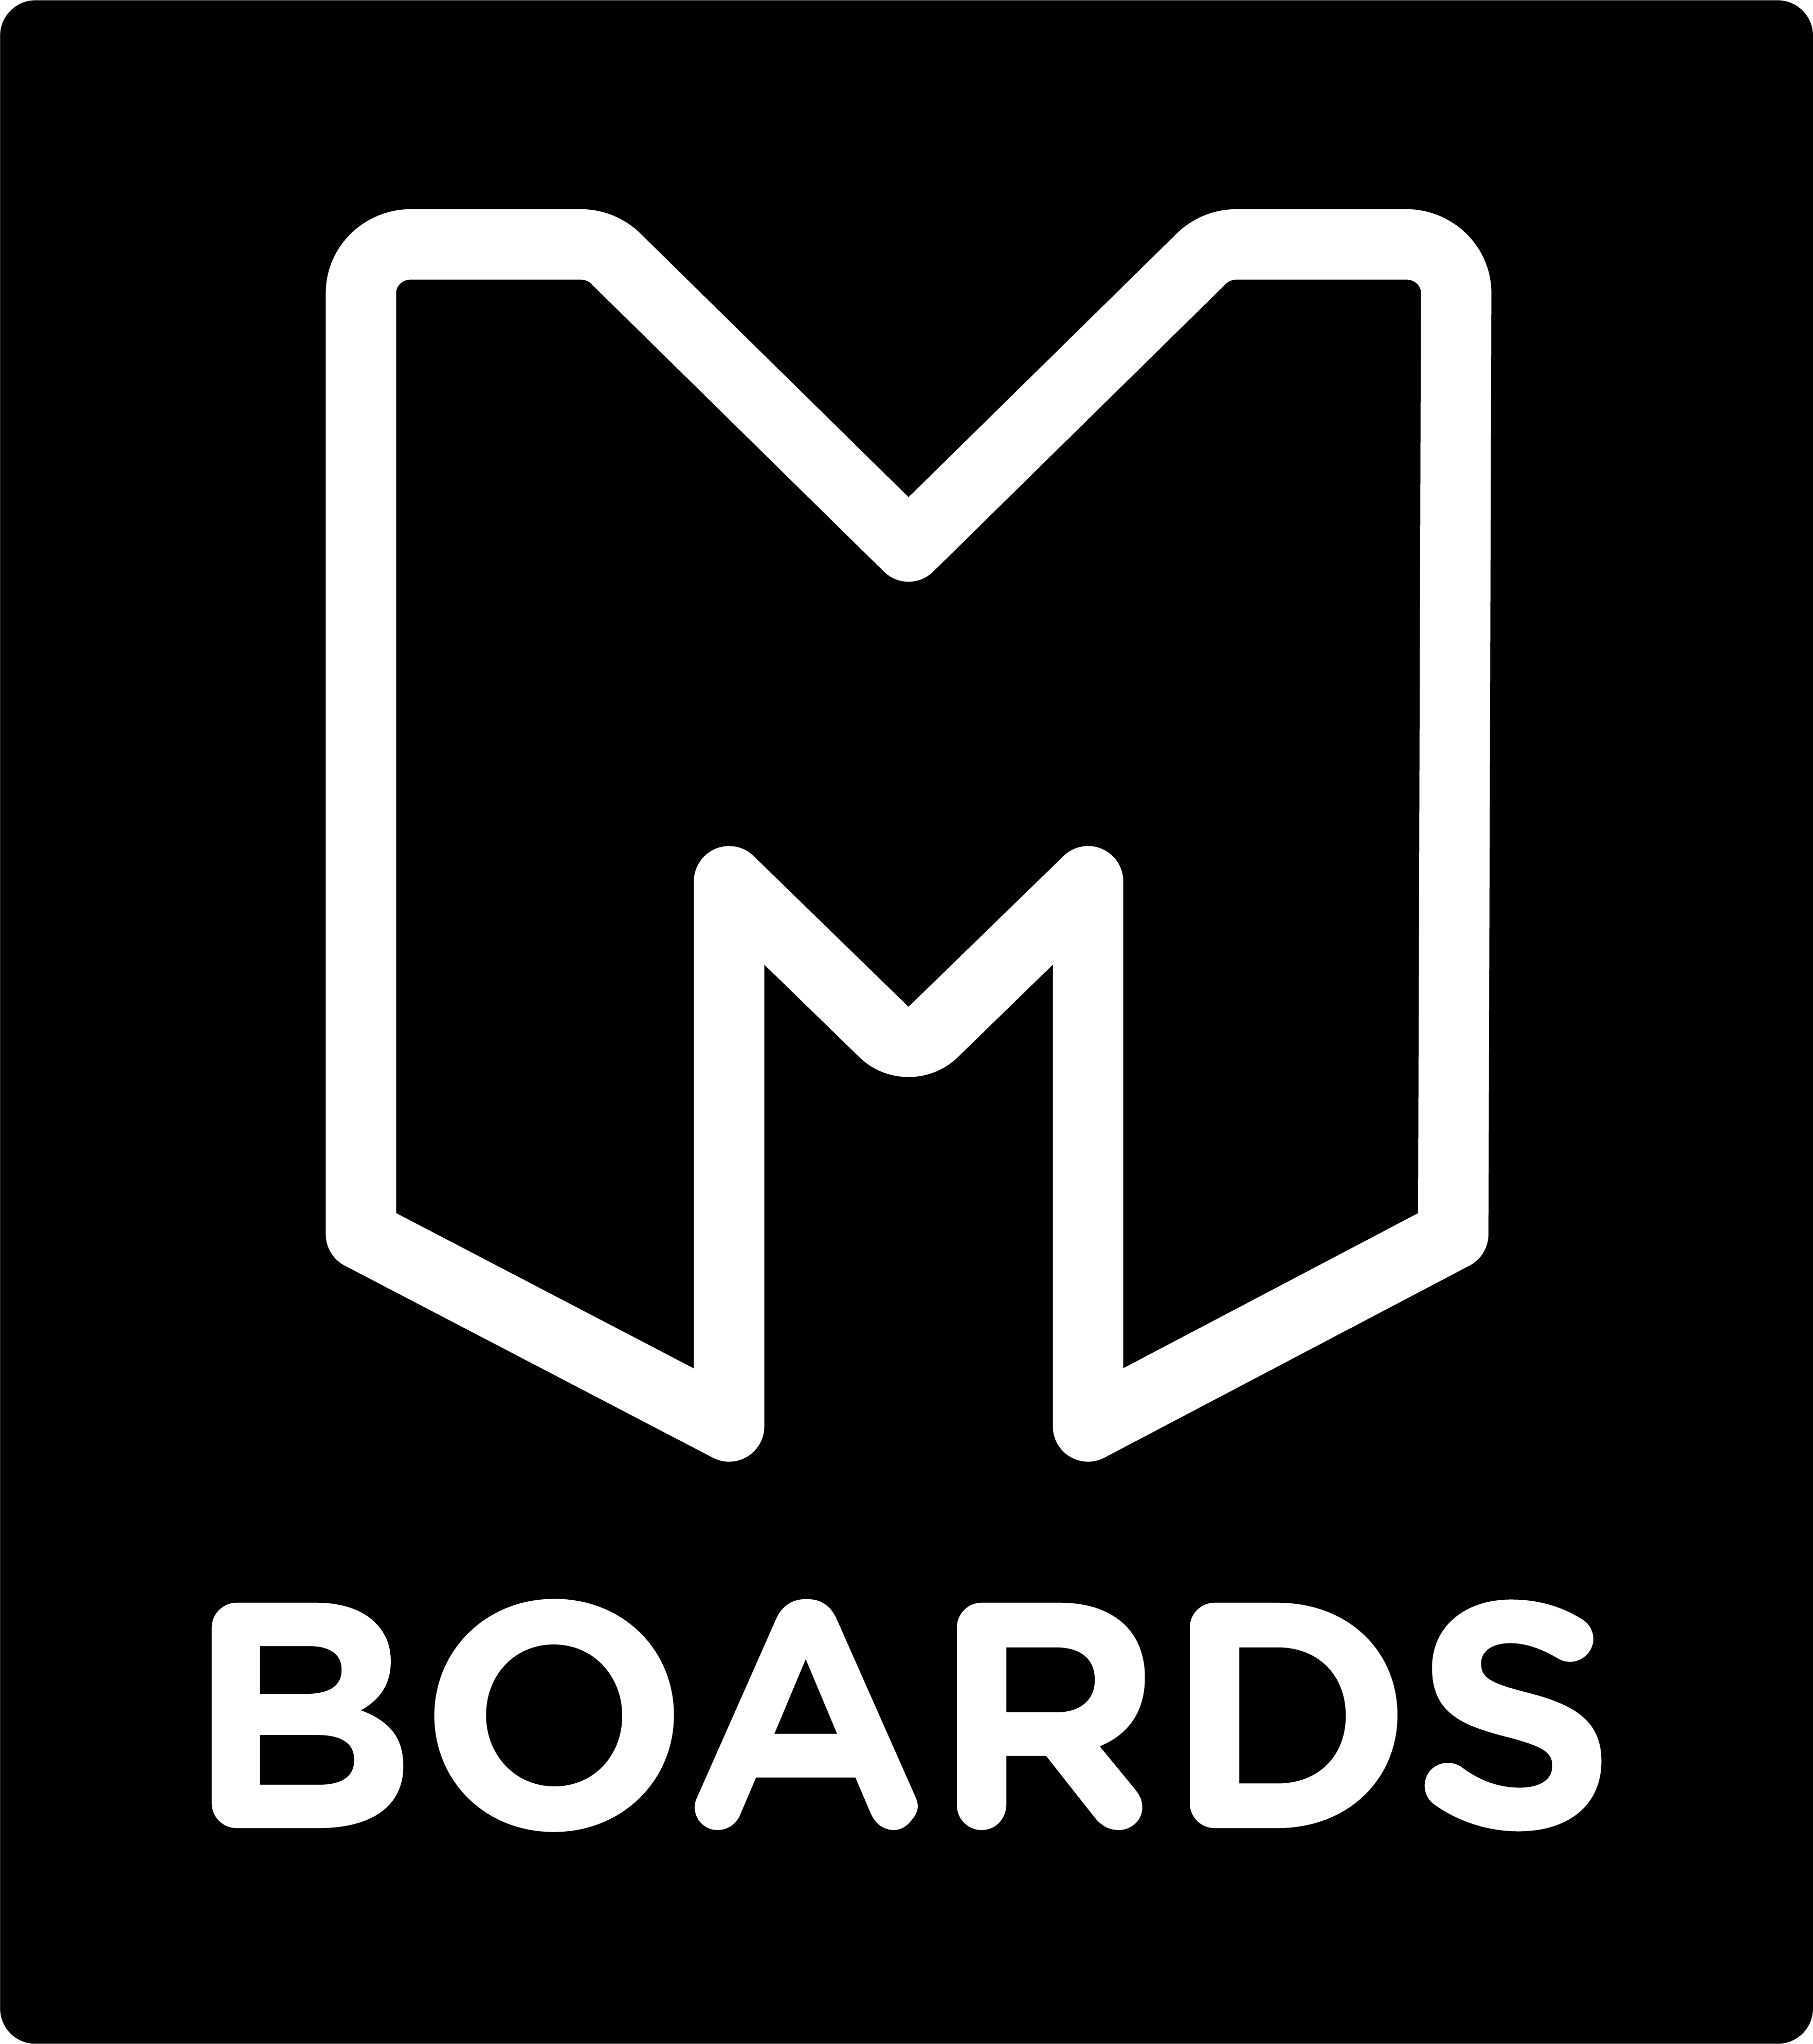 MBoards Help Center home page